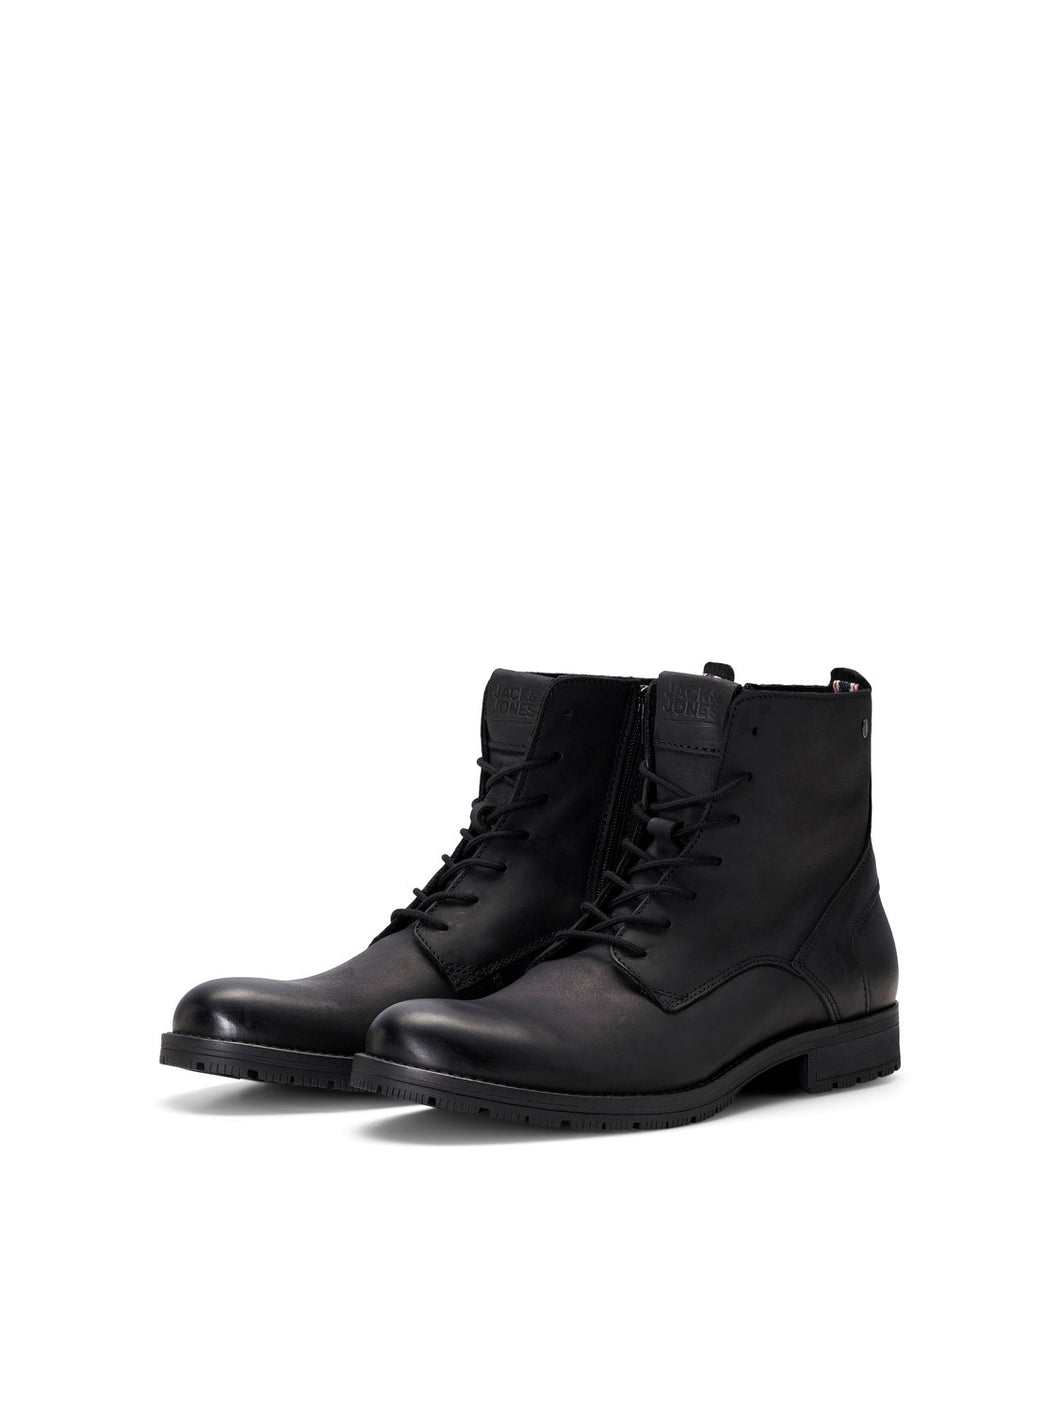 Orca Boots Anthracite